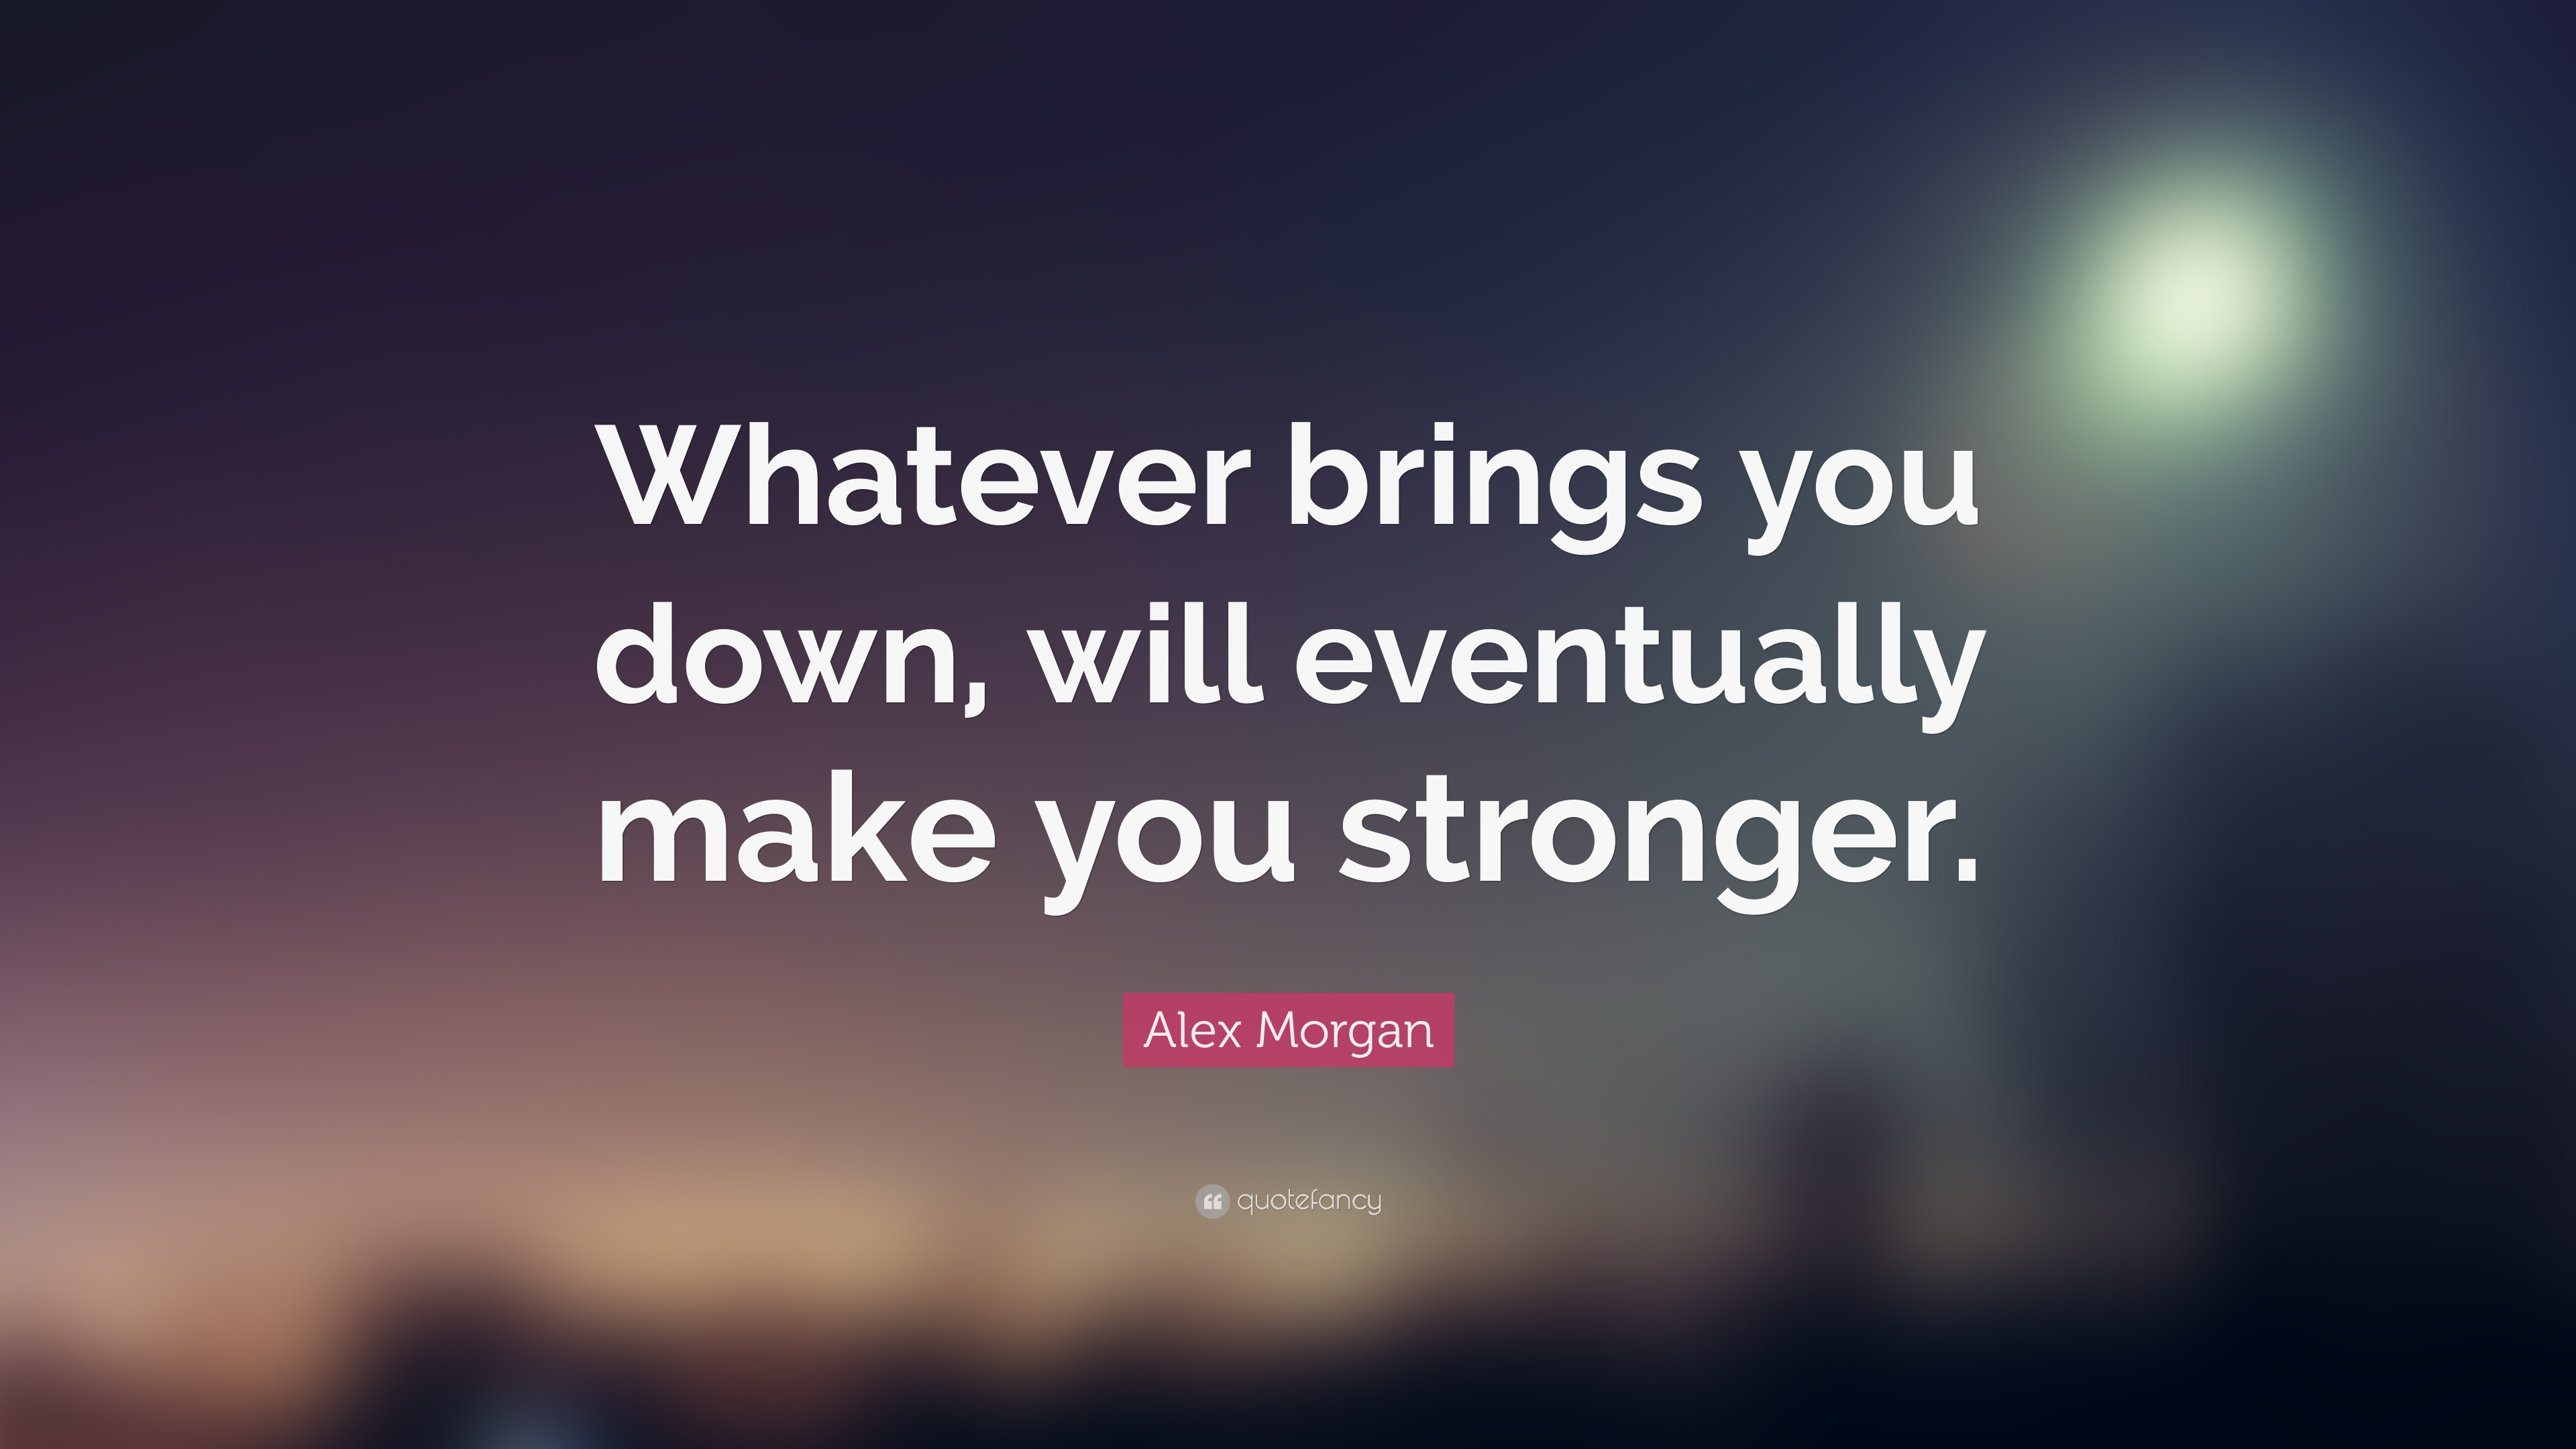 alex morgan quote whatever brings you down will eventually make